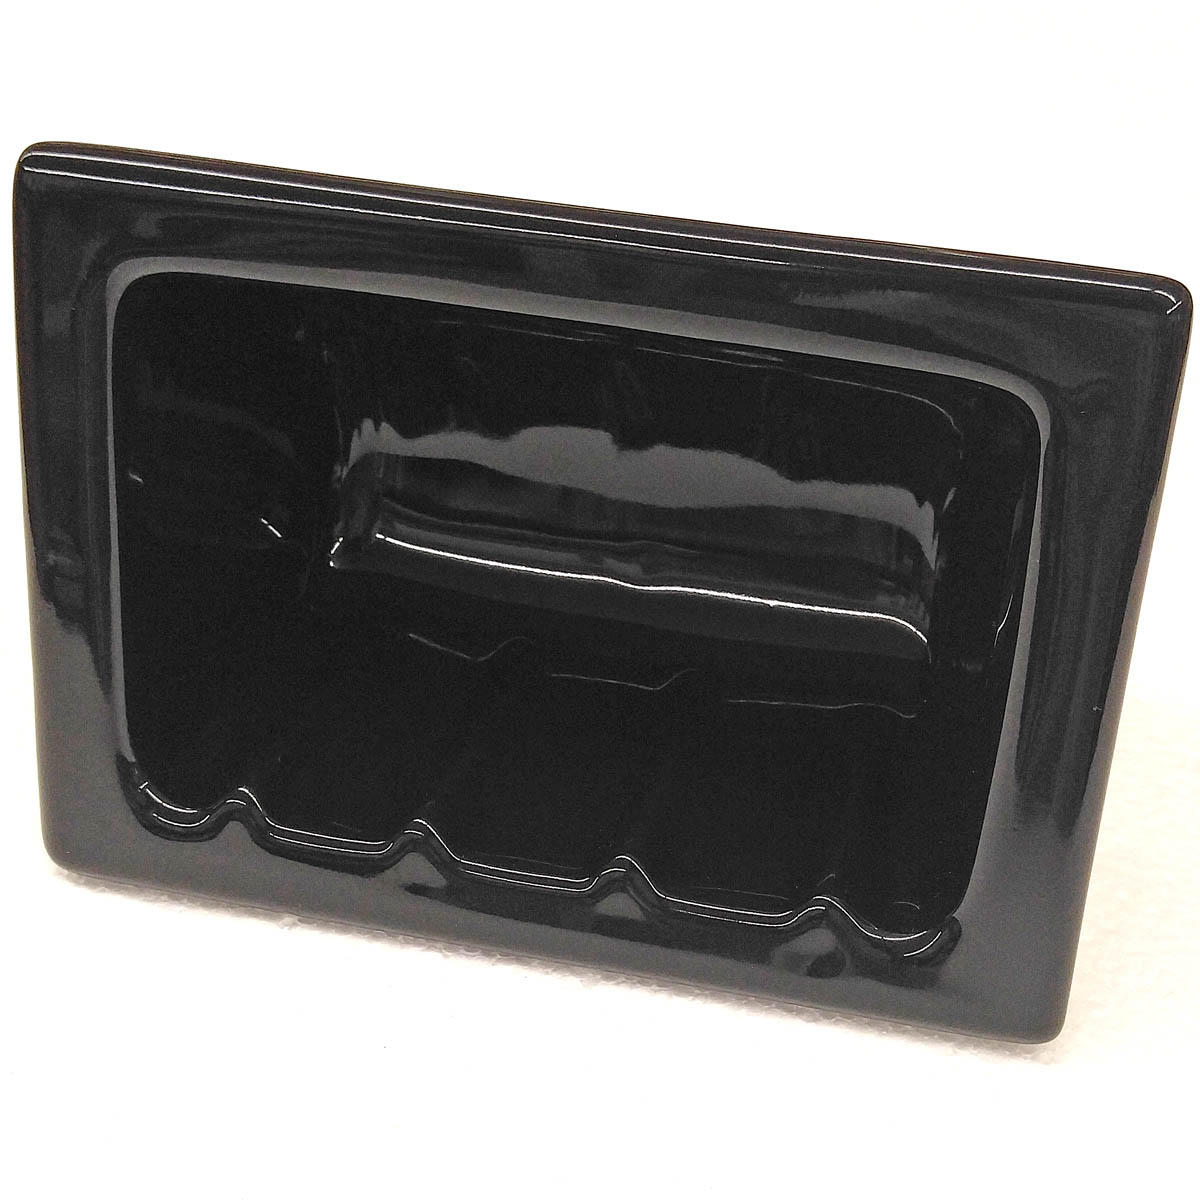 H46R Ceramic Recessed Soap Dish for Tile Showers and Baths 4 x 6 by HCP Industries